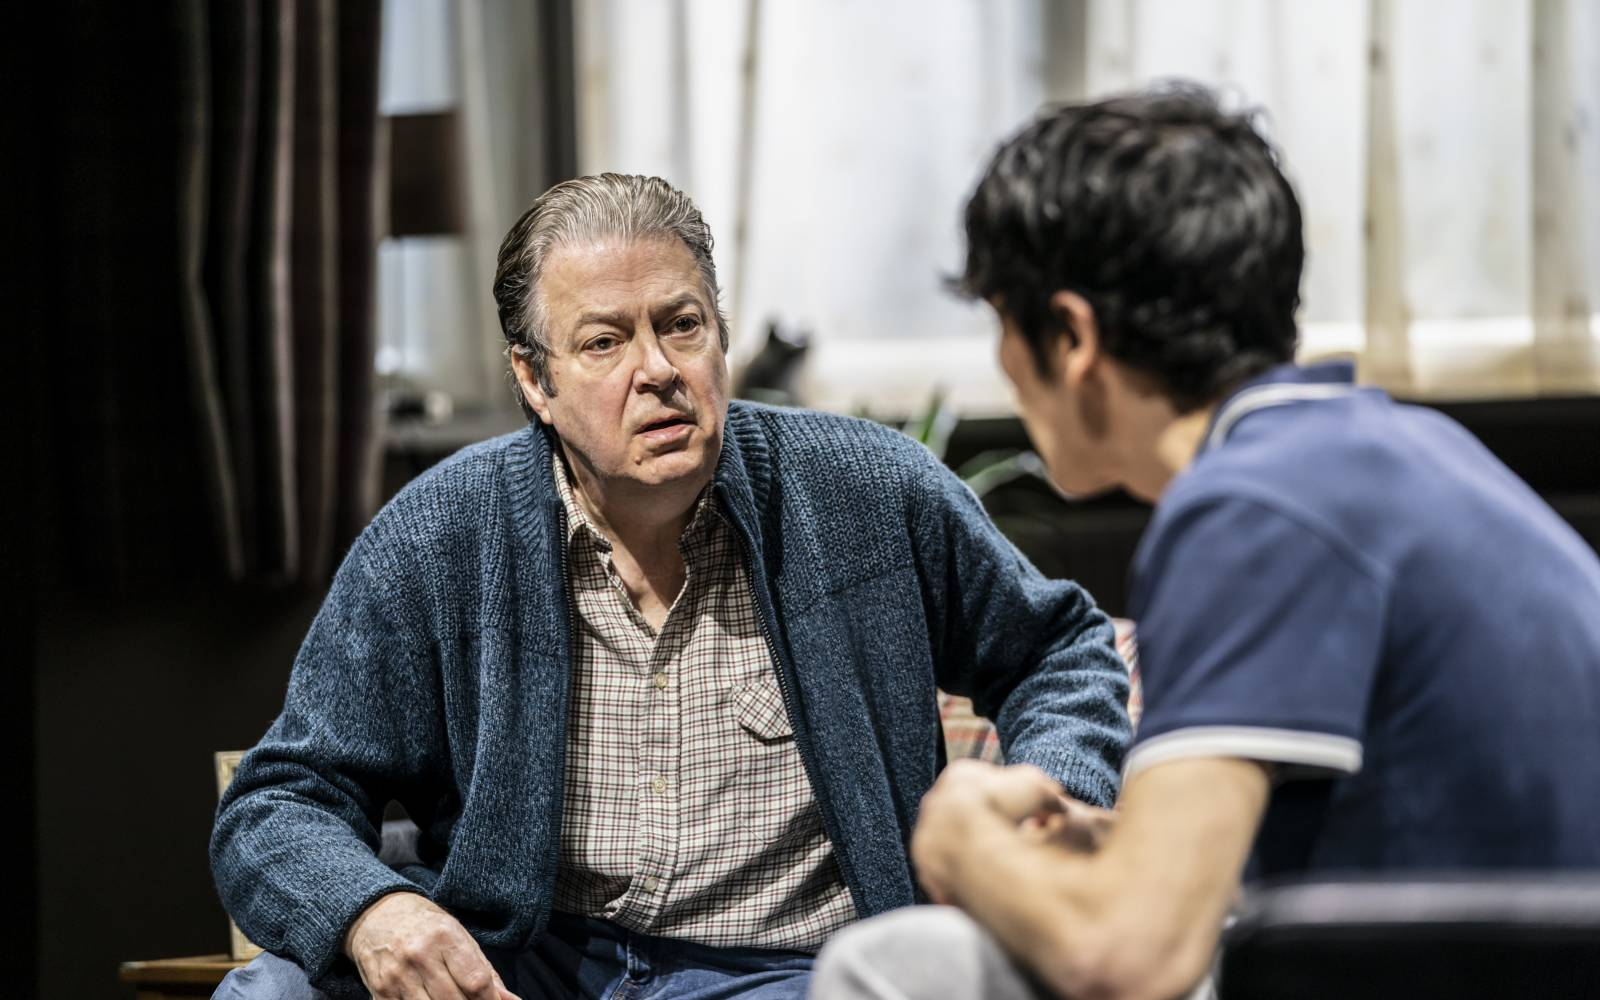 Roger Allam as Salter talks to Colin Morgan as his sons. Both are sitting, in modern dress